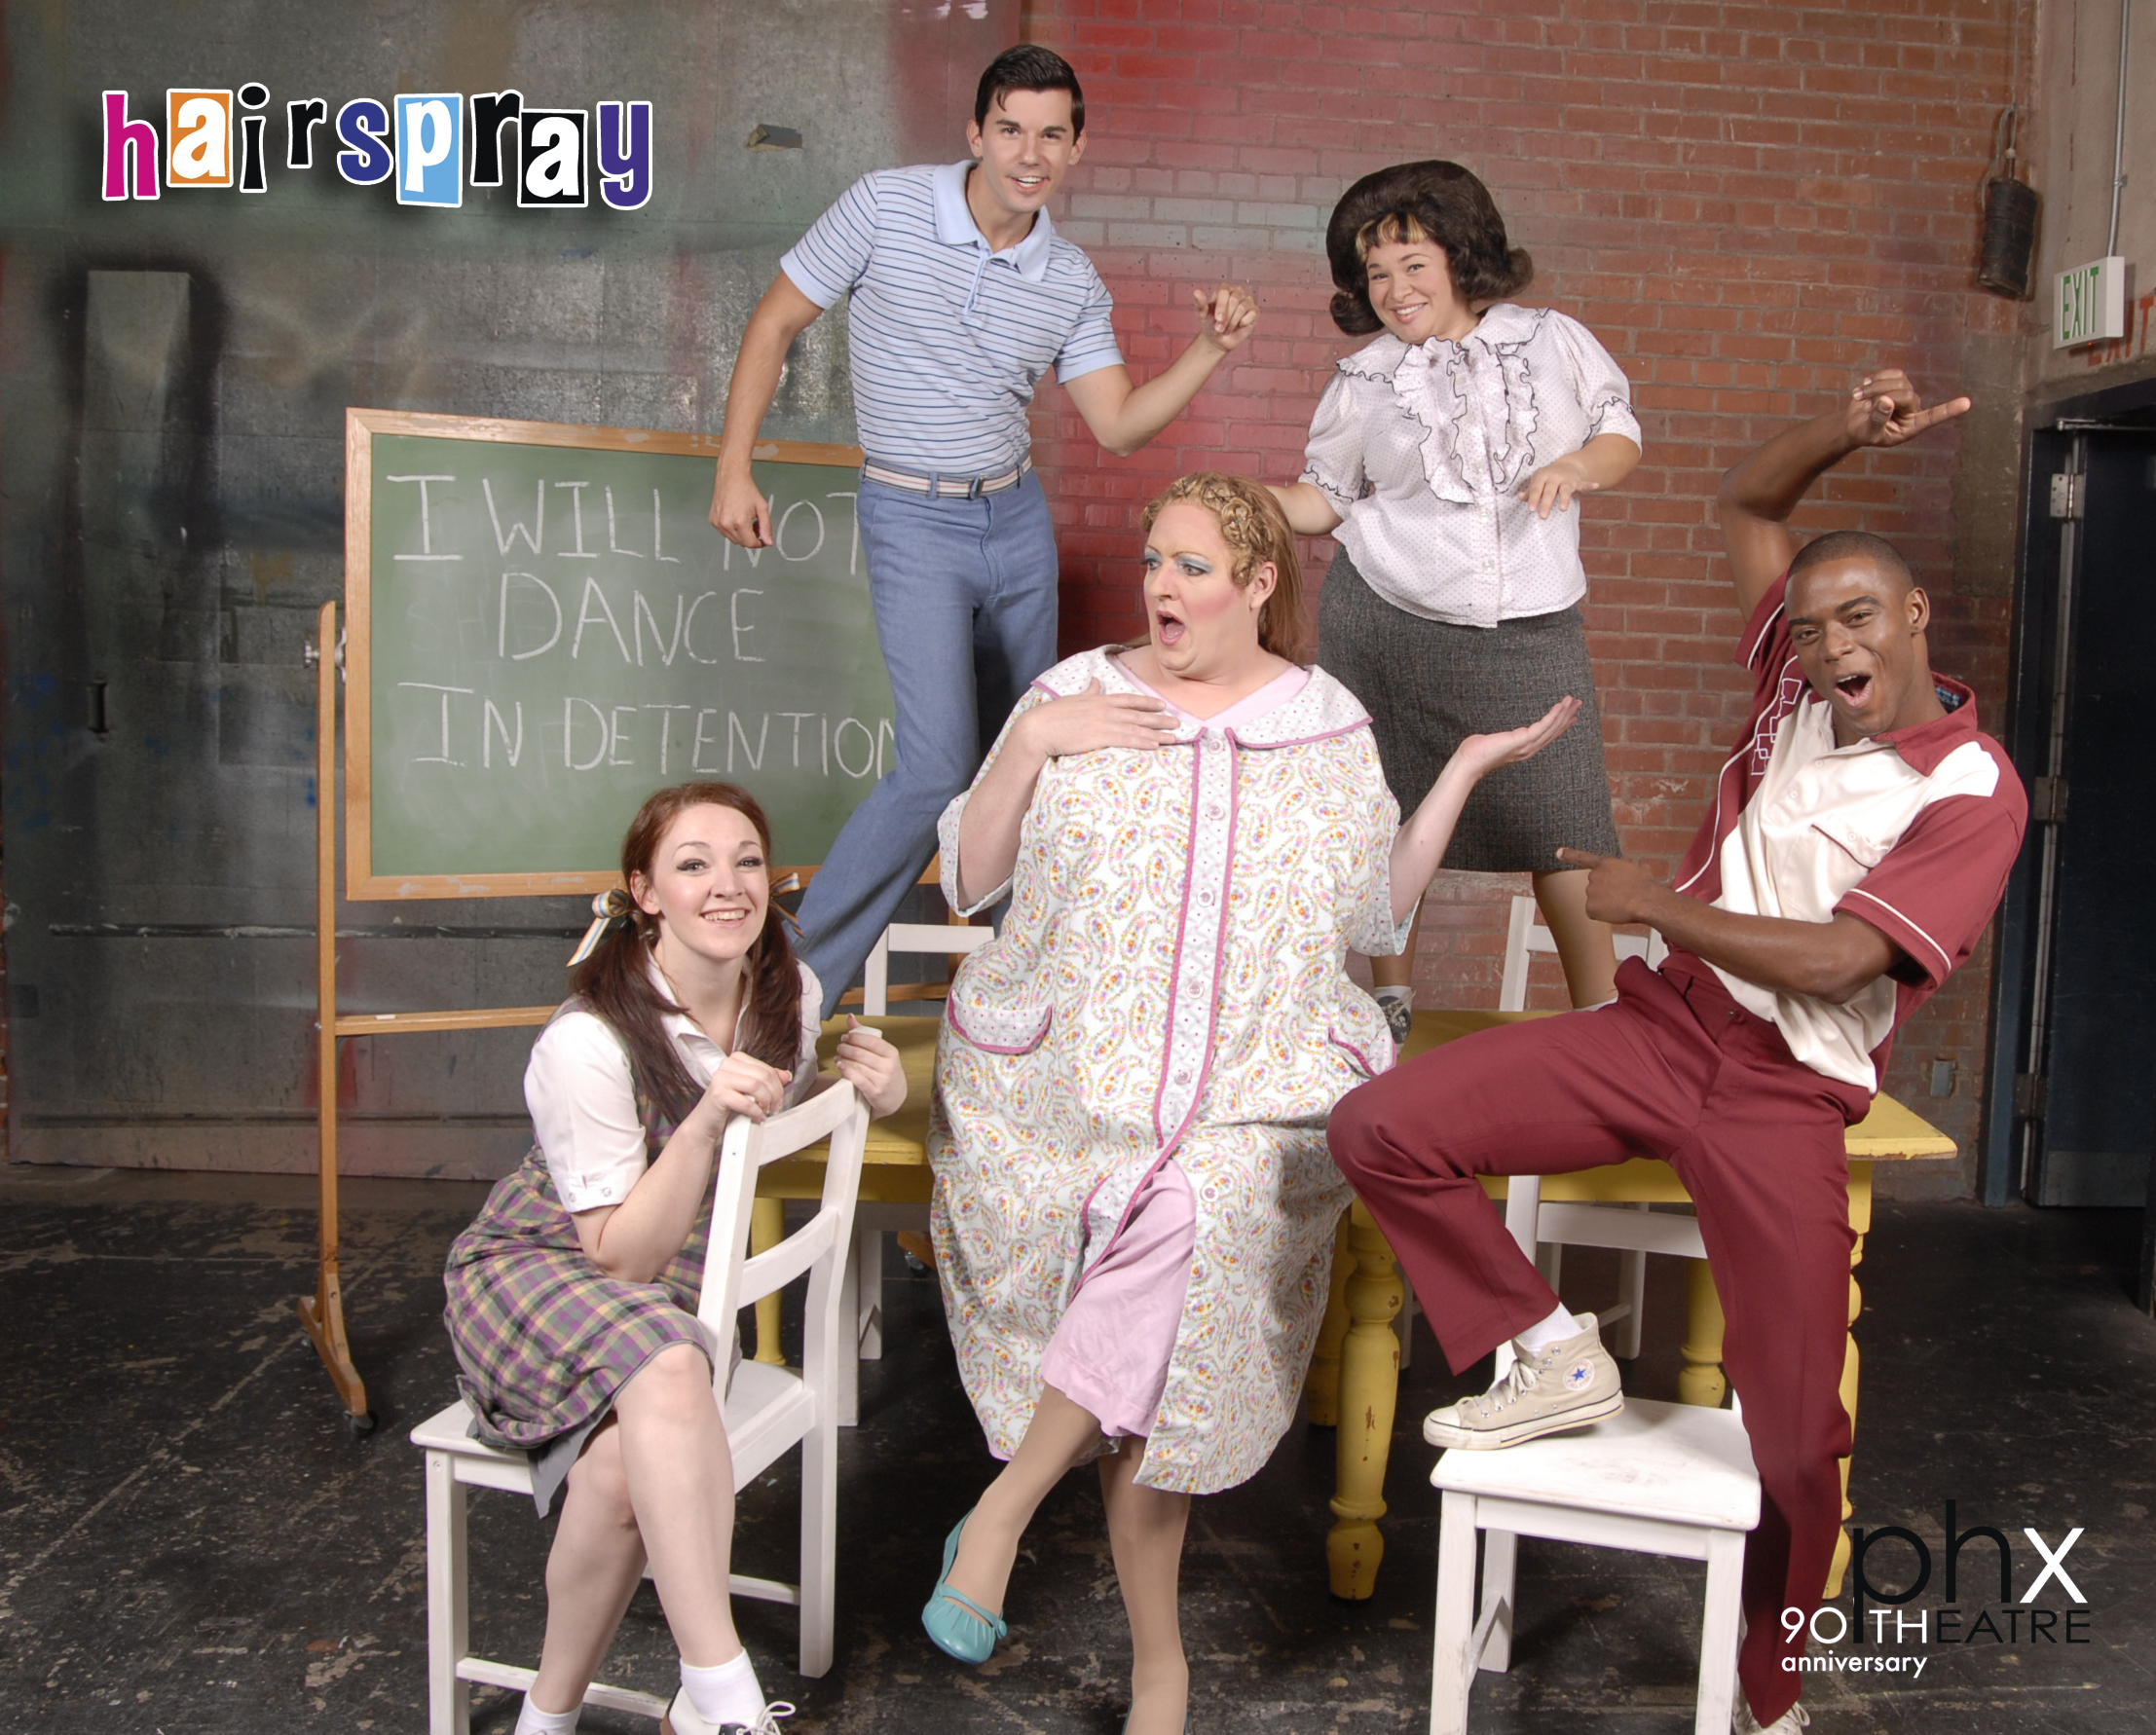 Shawna Quain, Chase Todd, Lillian Castillo, Antyon Le Monte and D. Scott Withers (center) of Phoenix Theatre's 'Hairspray'. (Photo by Laura Durant)